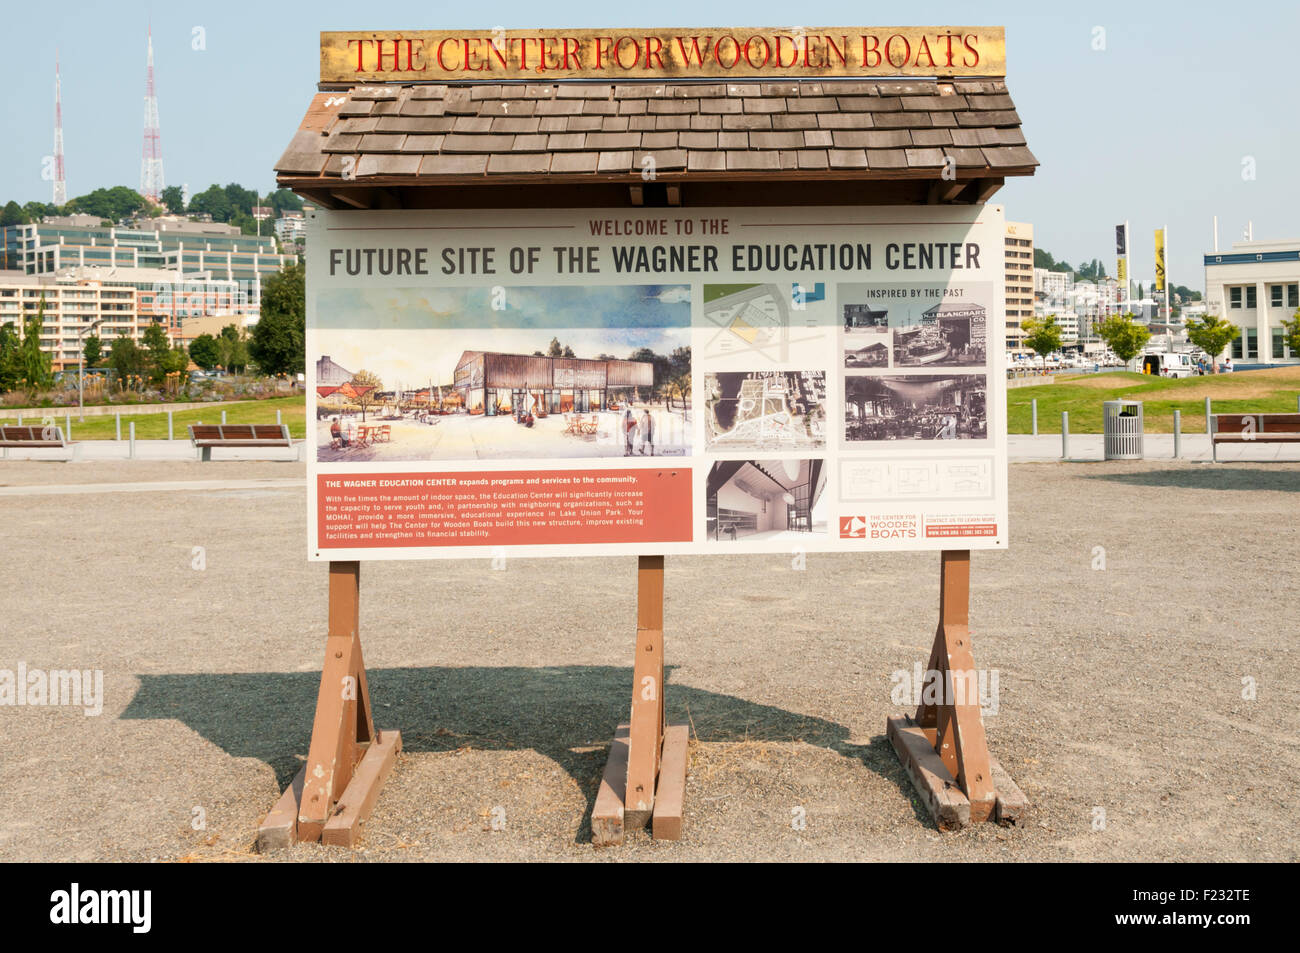 Details at The Center for Wooden Boats on South Lake Union in Seattle concerning the development of the Wagner Education - Stock Image